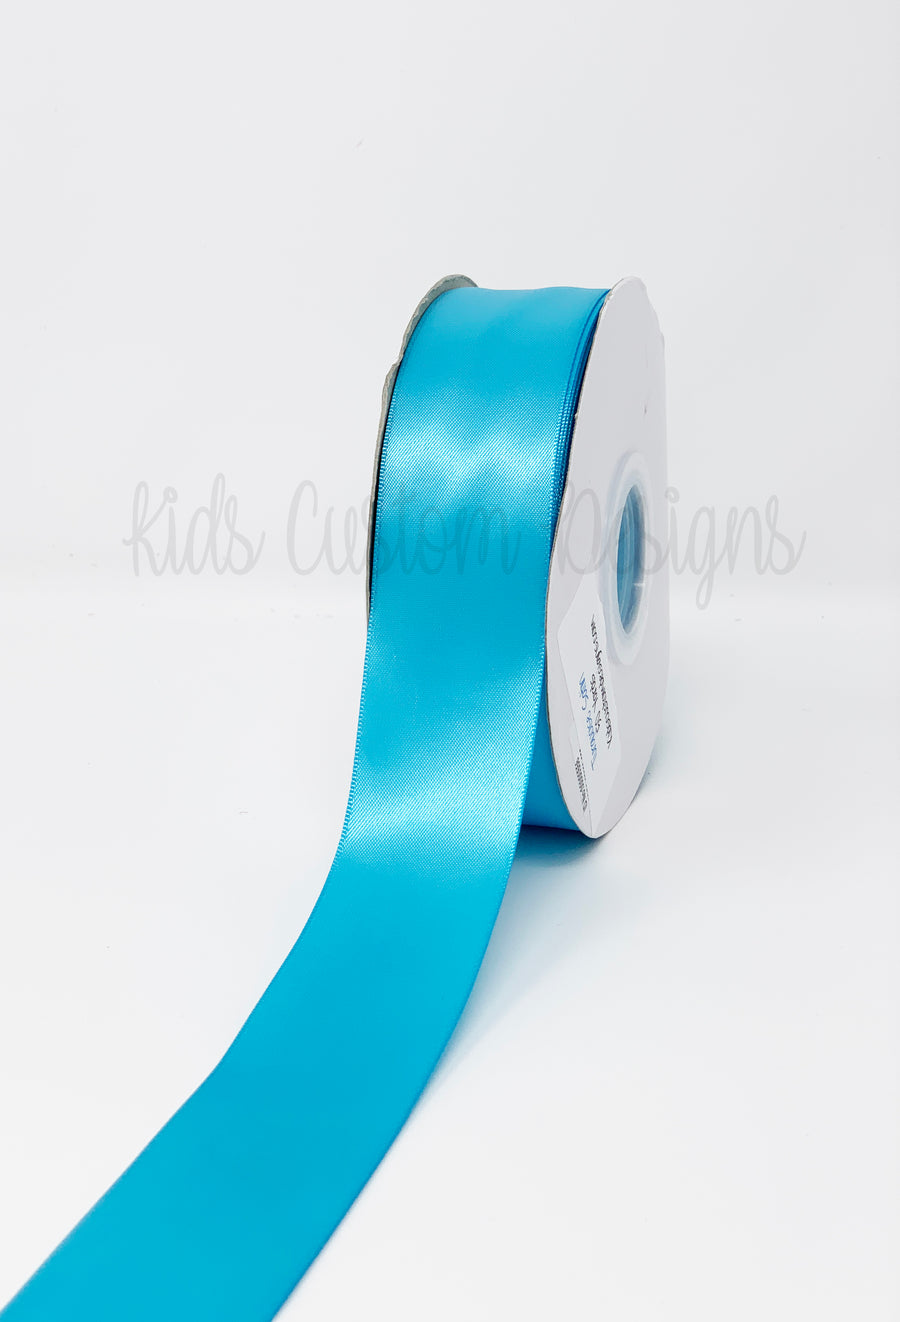 Double Face Satin Ribbon Turquoise (W: 1-1/2 inch | 100 yards)